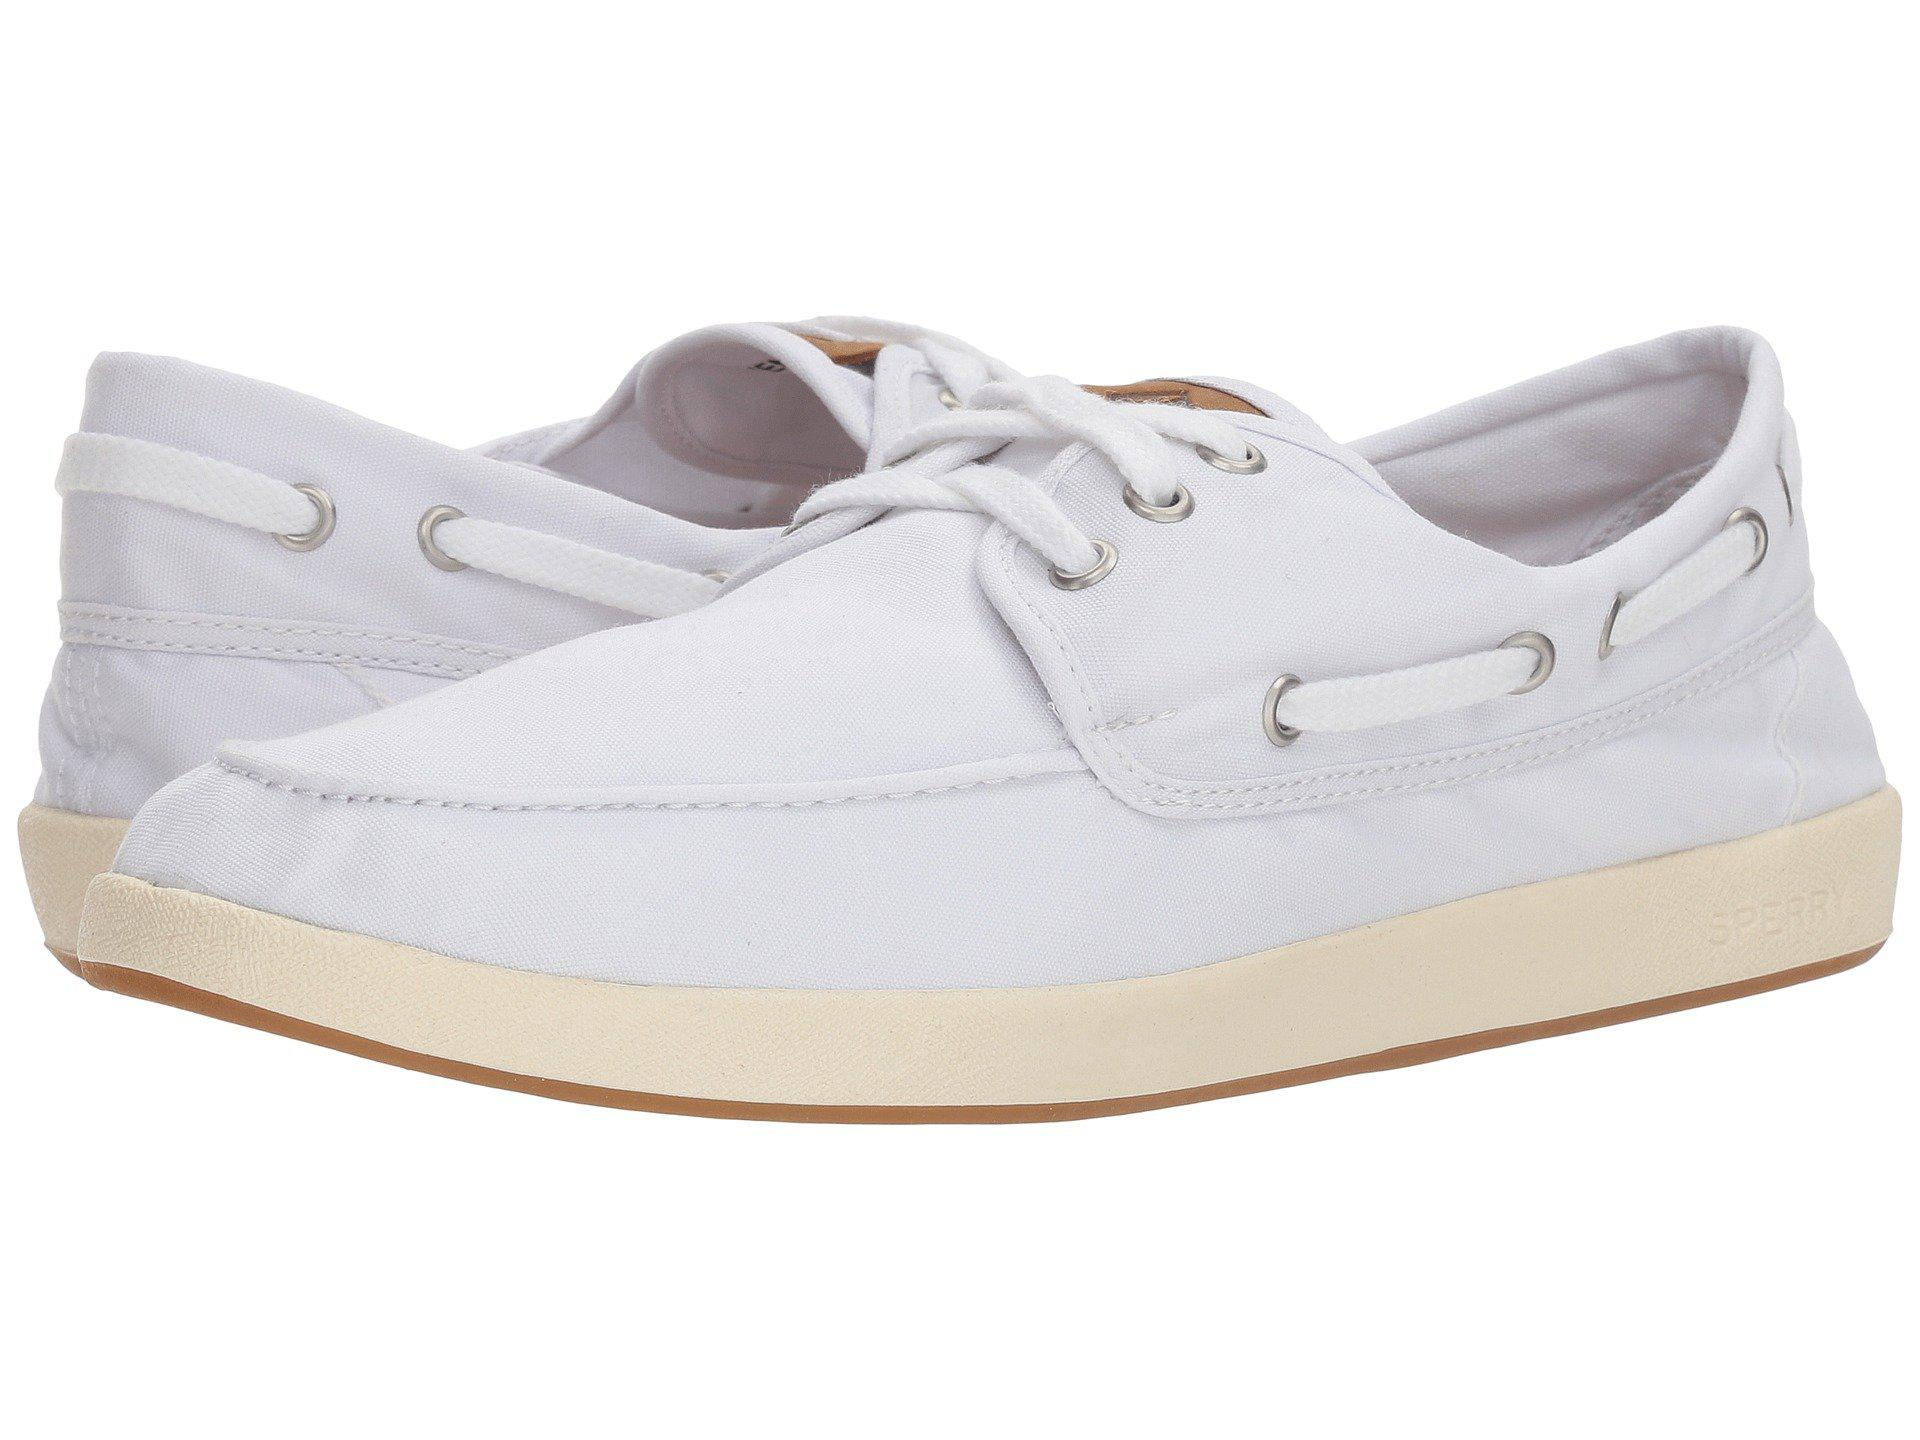 605577987a4 Nordstrom Mens Topsiders